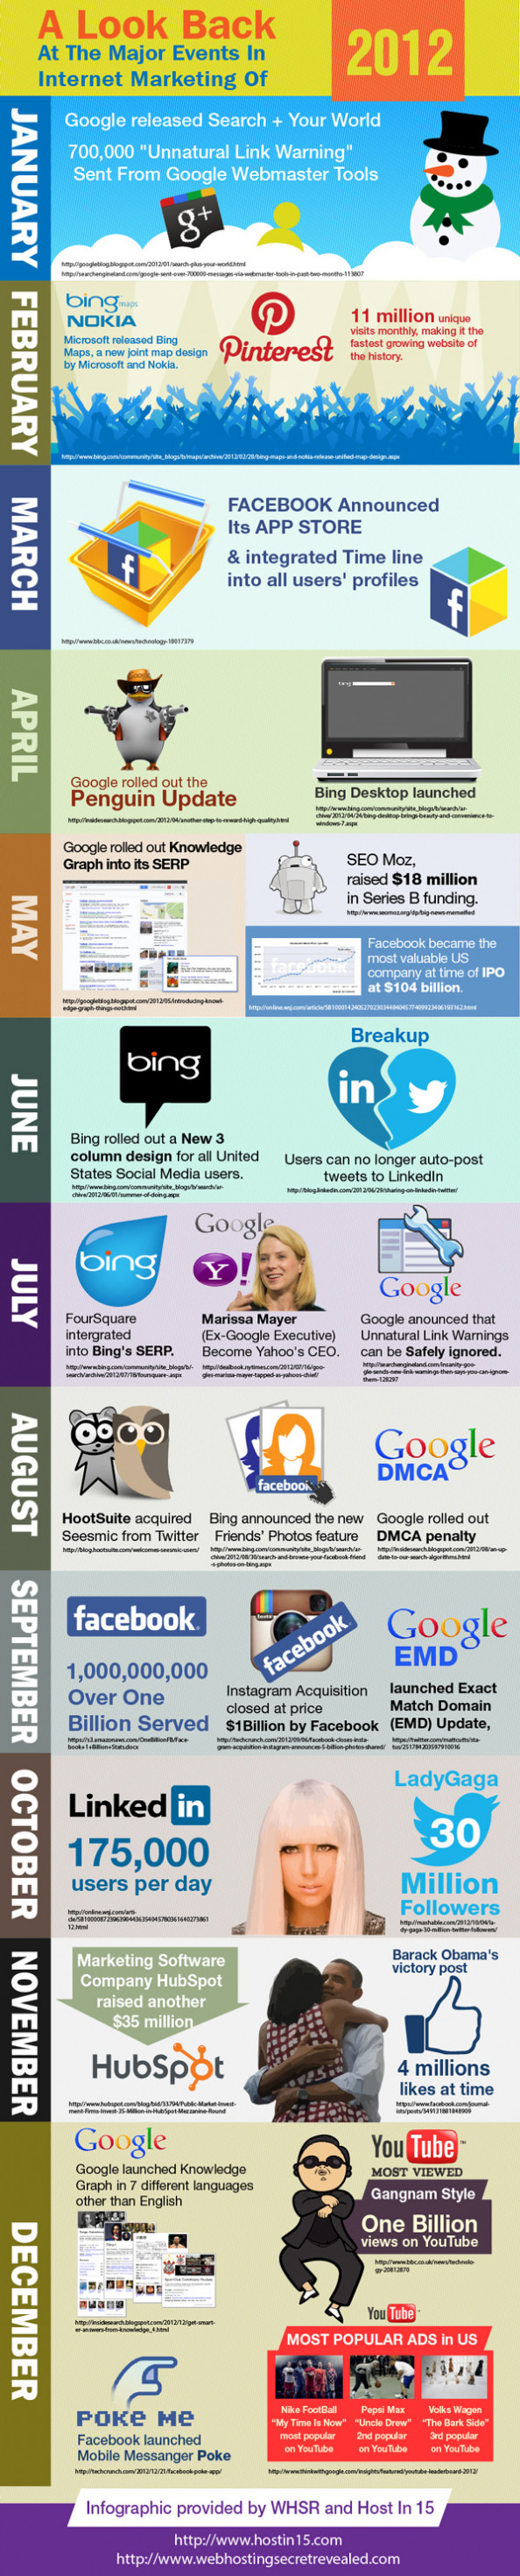 A Look Back at 2012 Infographic